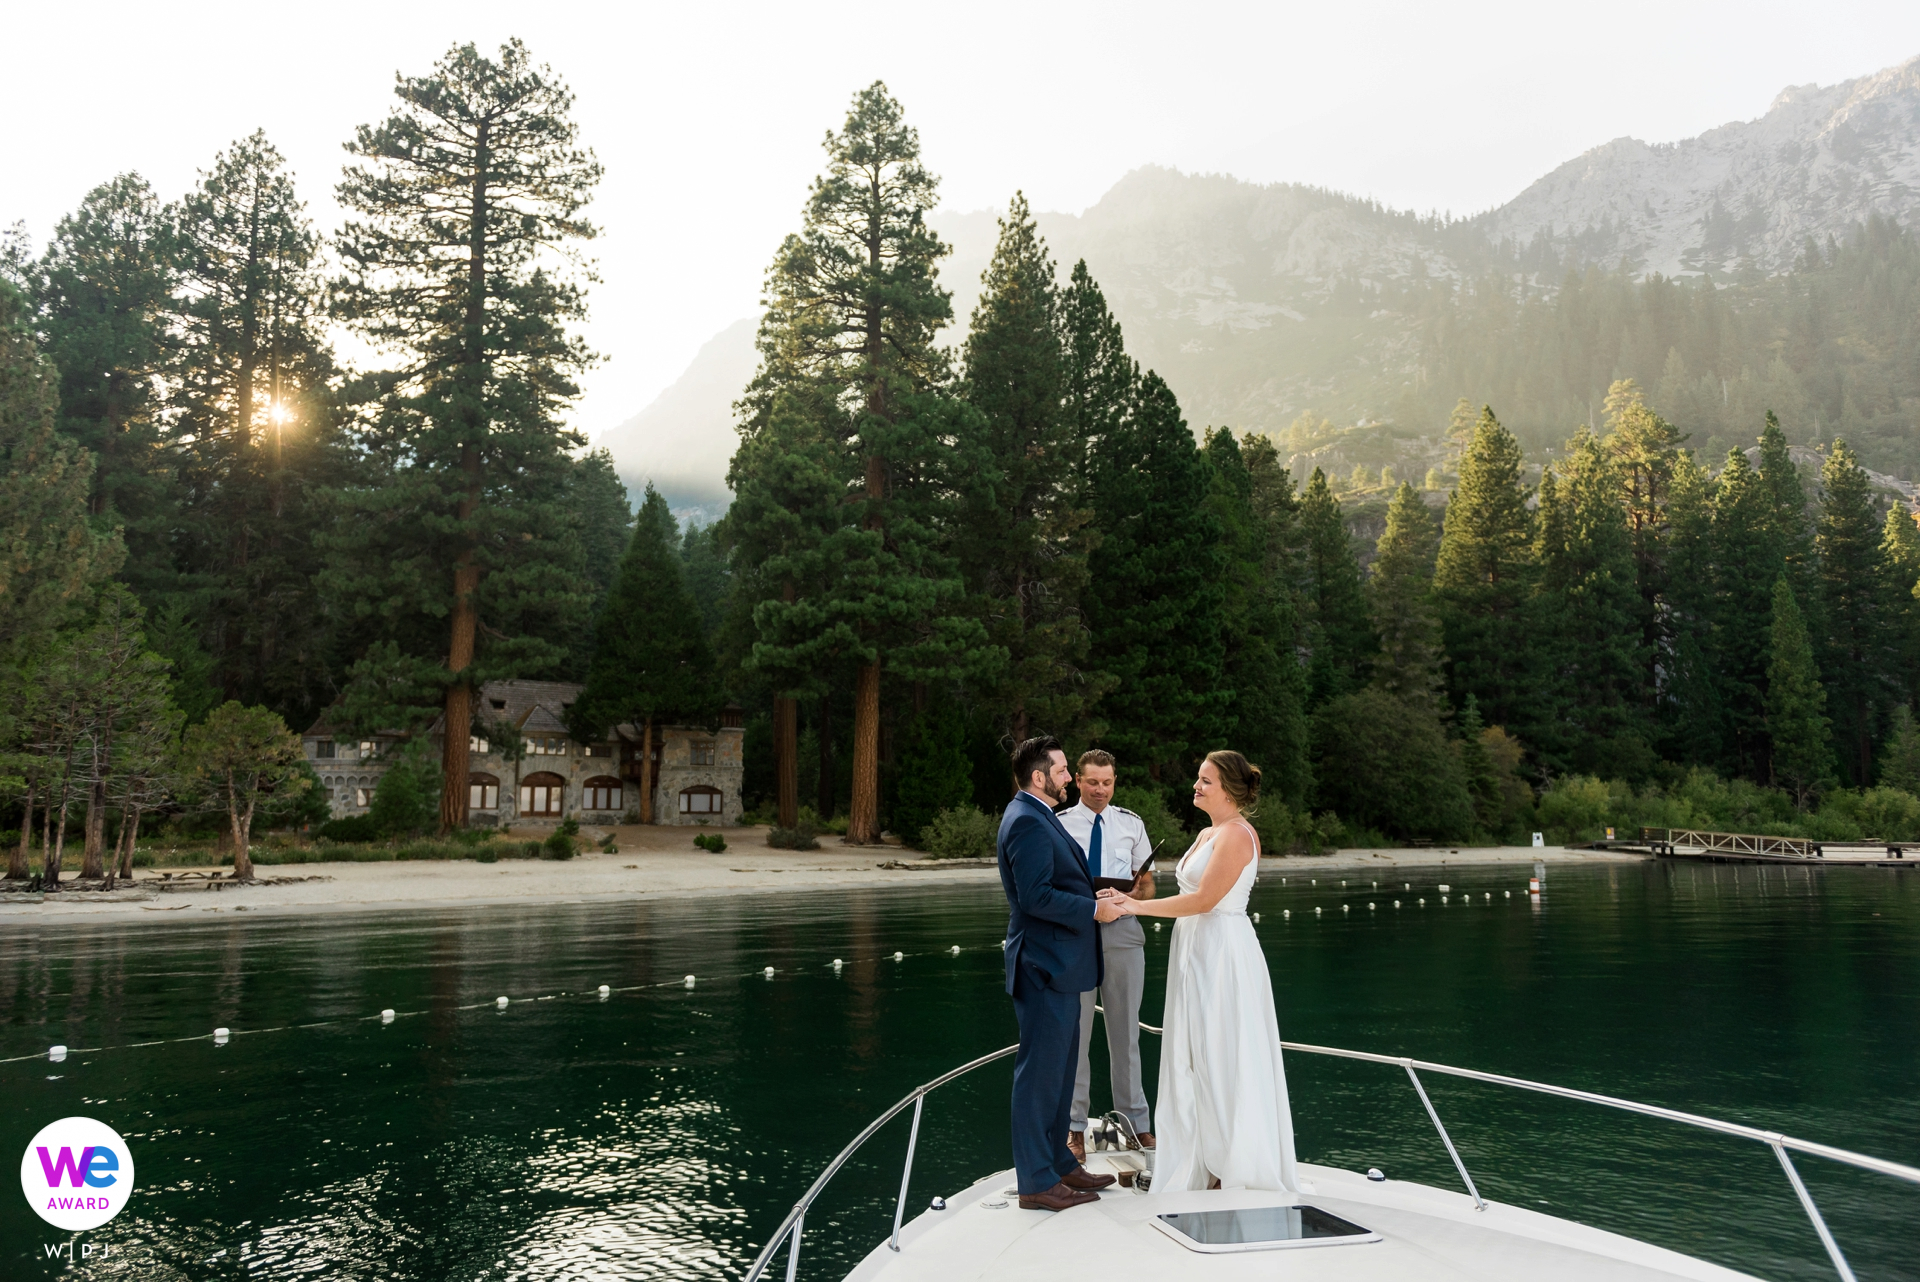 Lake Tahoe Boat Ride Wedding Images | Captain Steve officiates their wedding ceremony on the bow of his boat